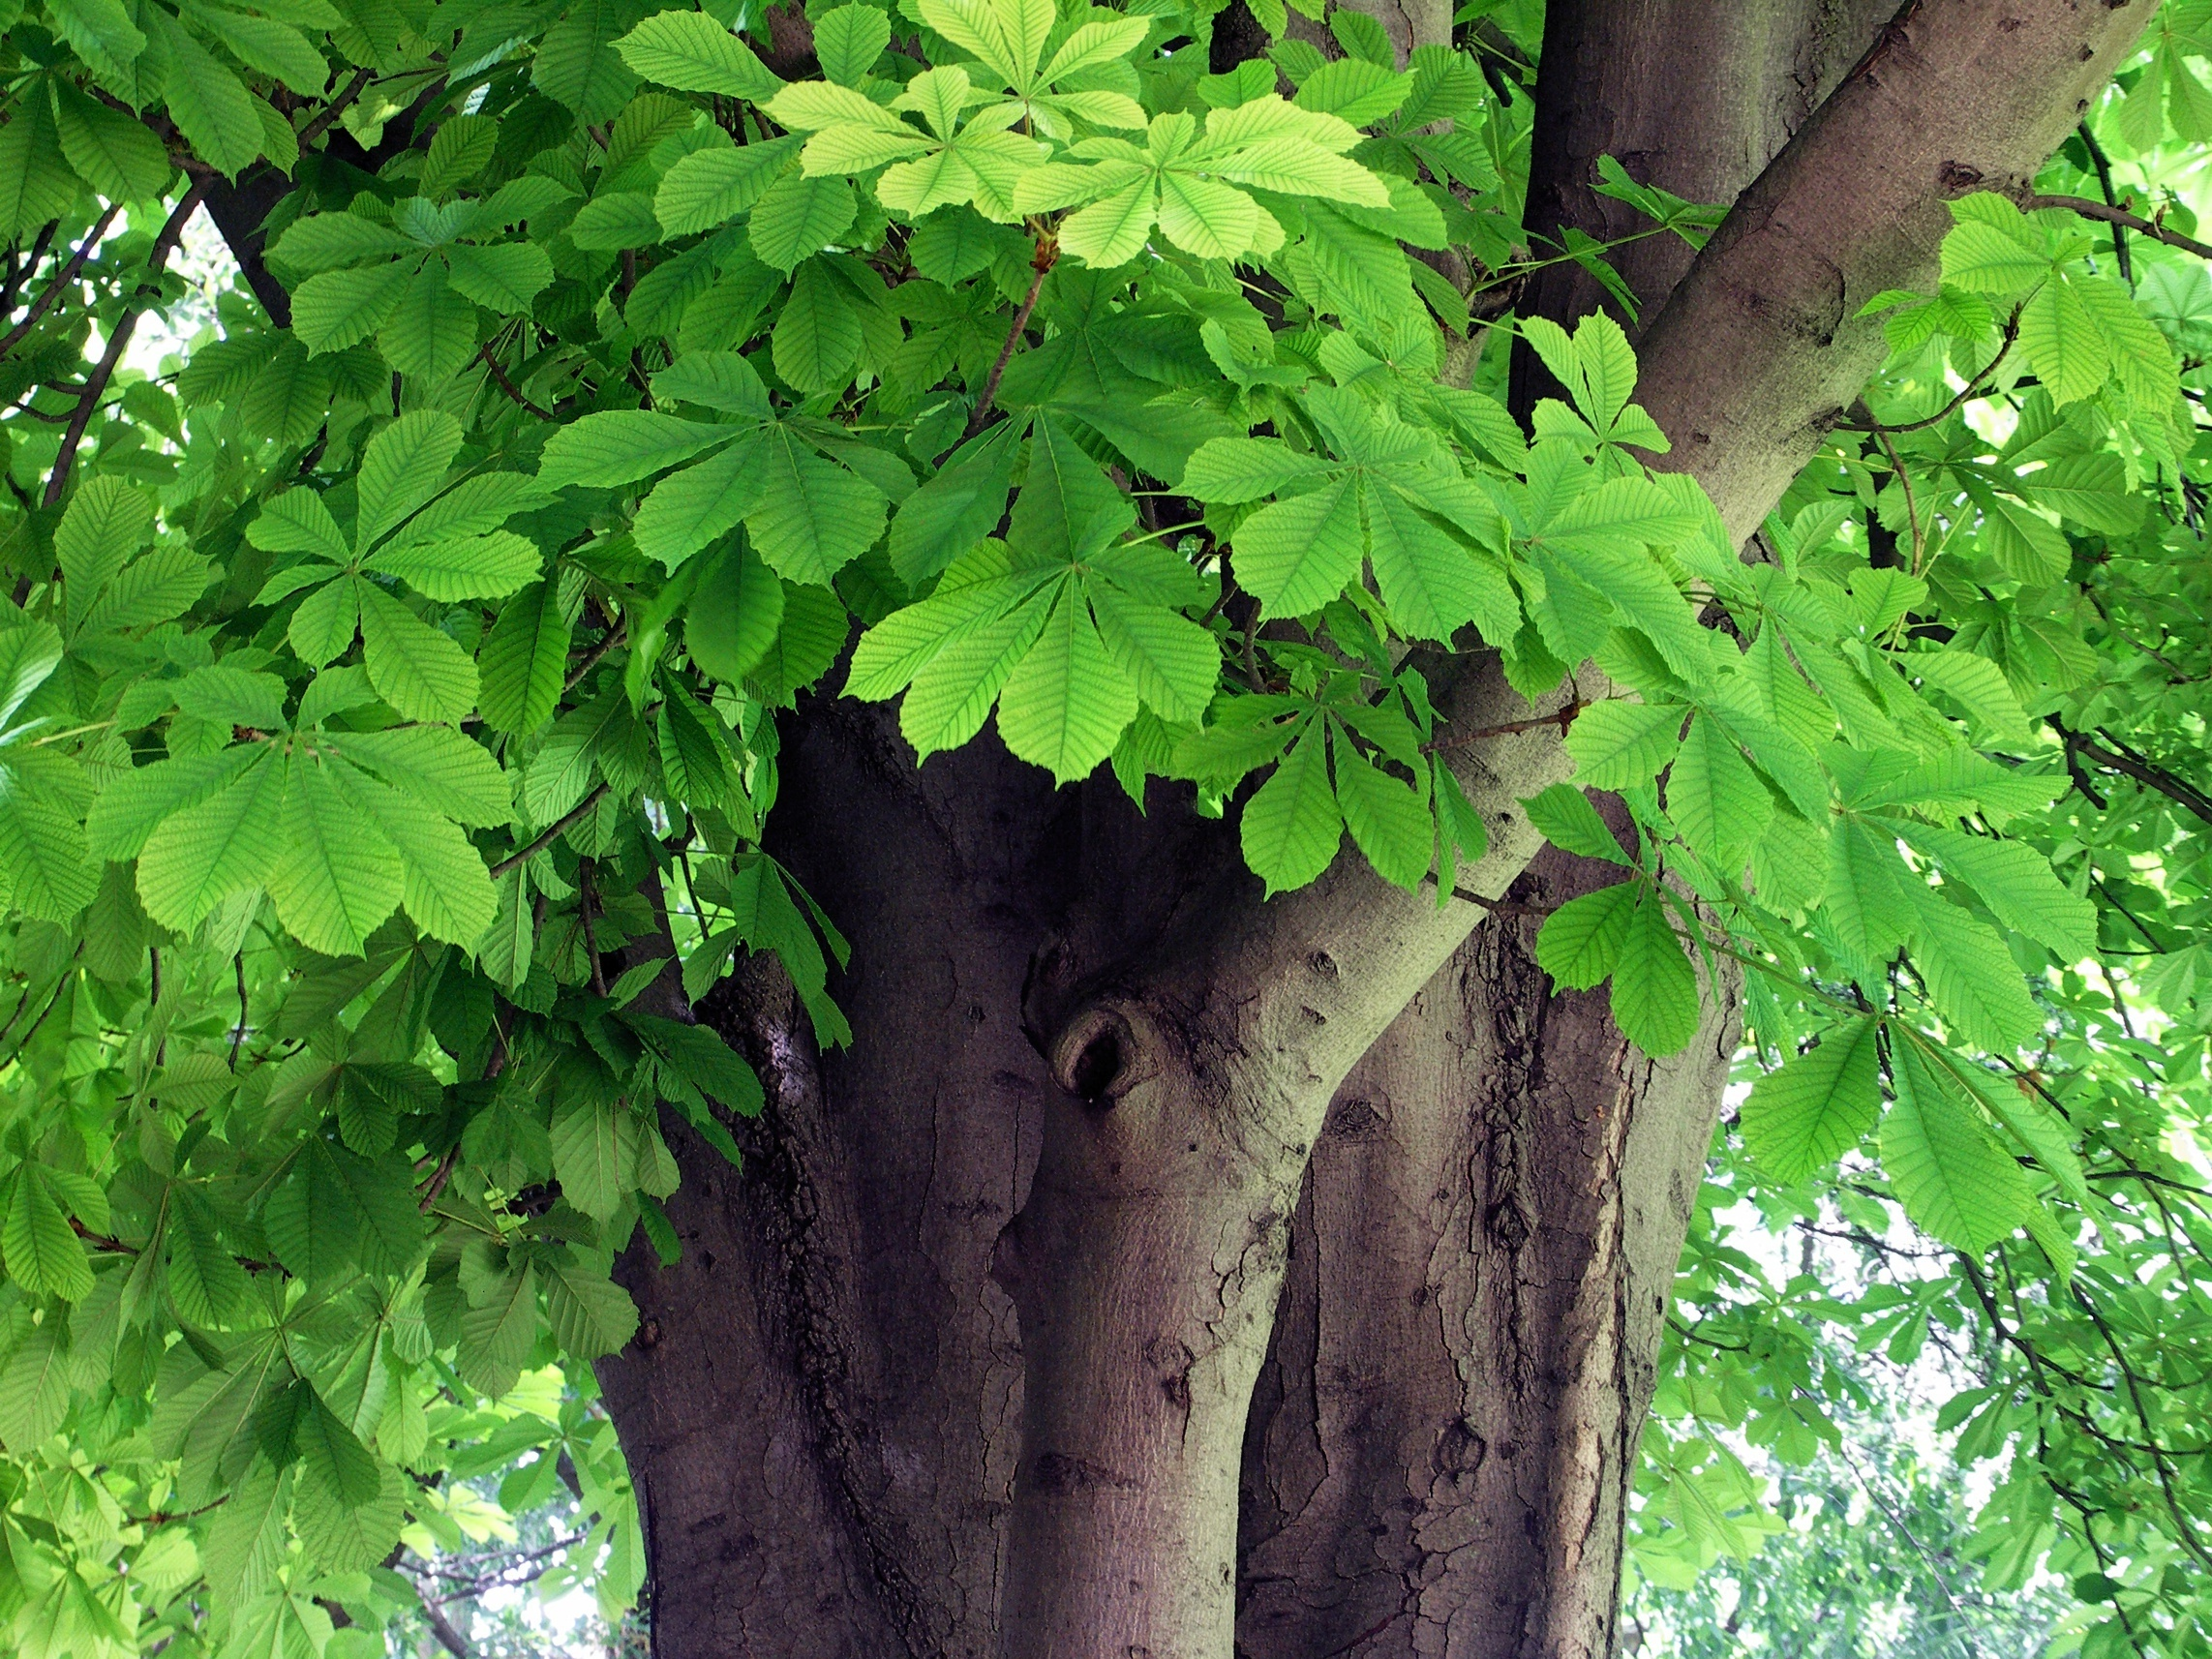 Tree_of_the_week_2_Horse_chestnut